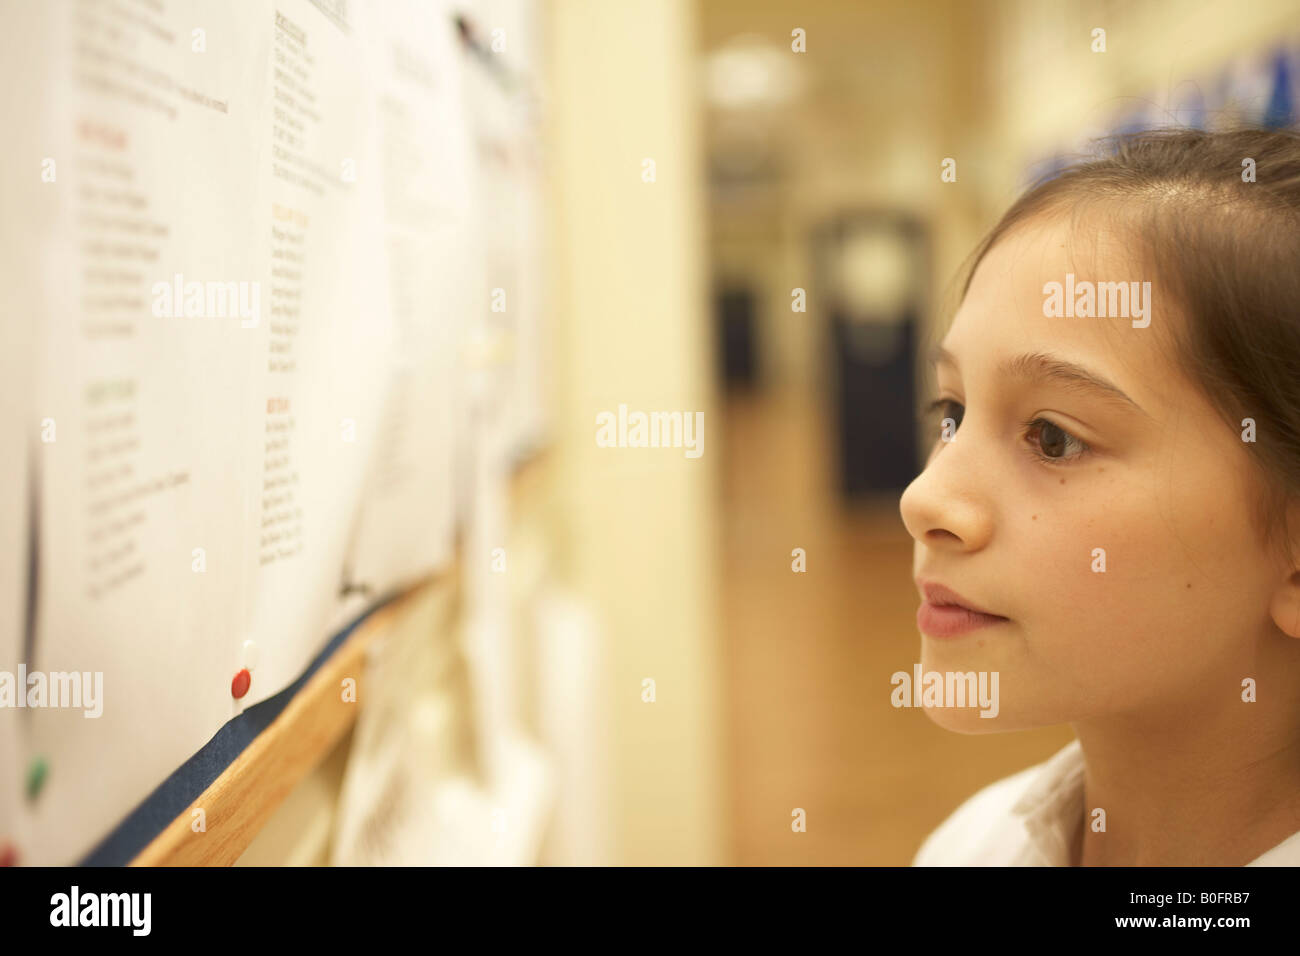 Girl reading message board - Stock Image